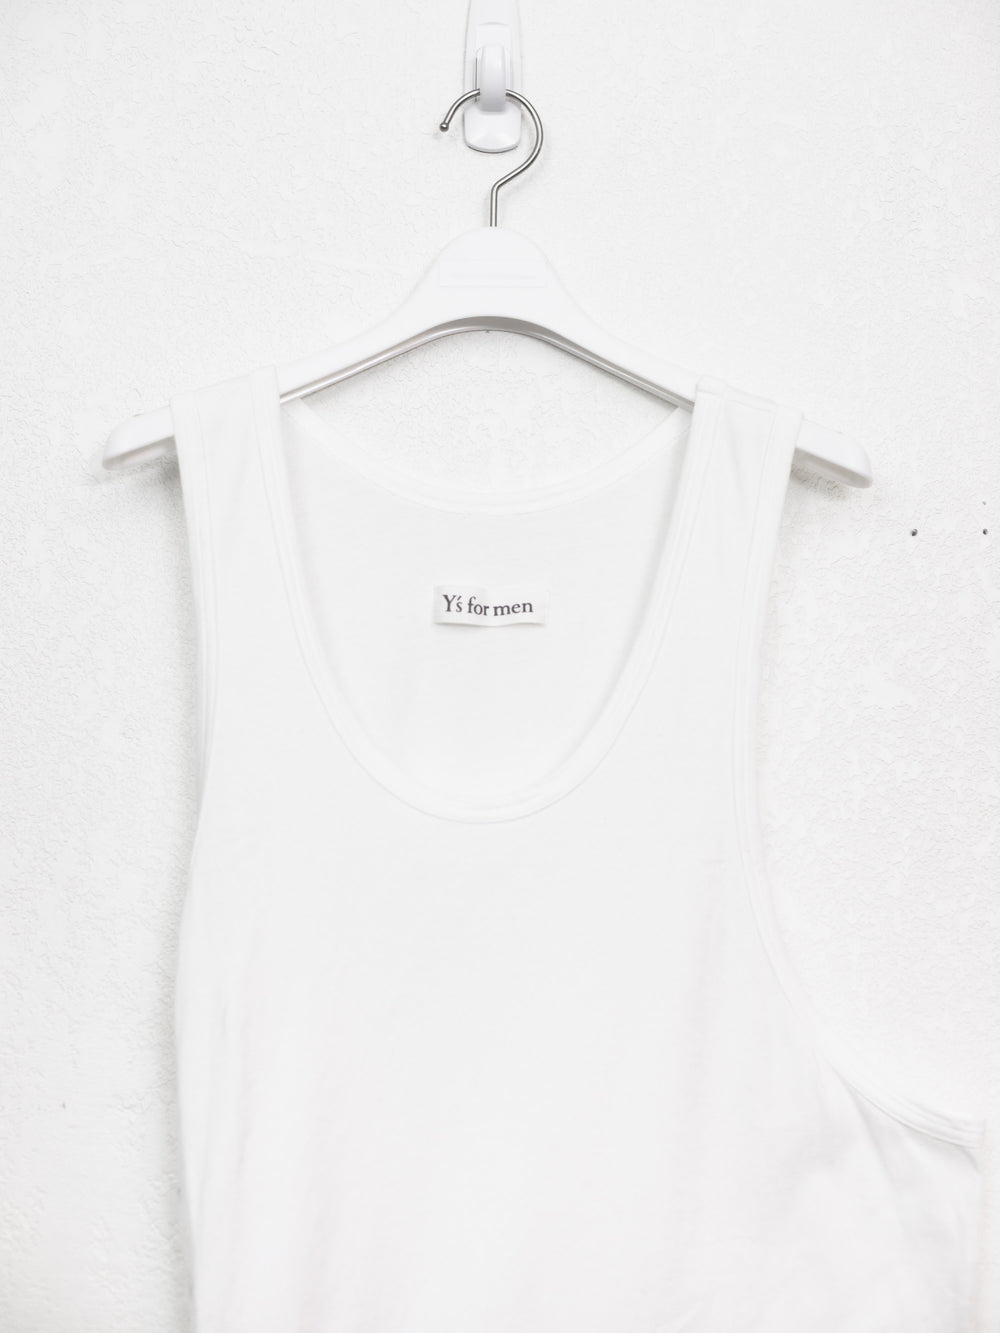 Yohji Yamamoto Y's For Men Side Lace Tank Top